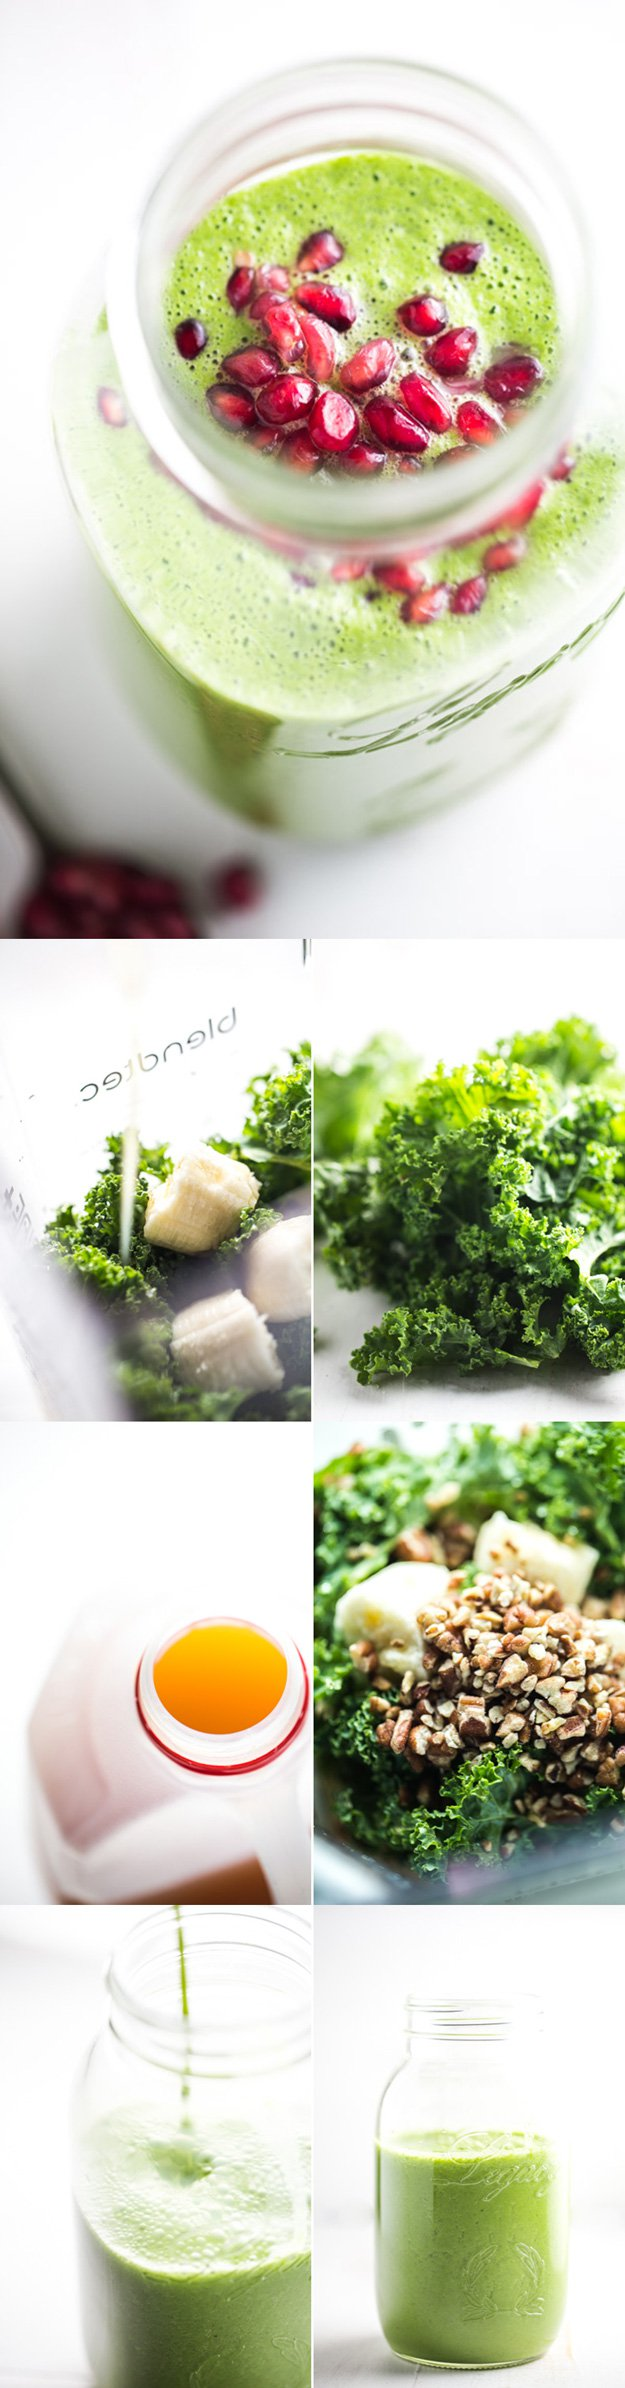 Healthy and Delicious Green Detox Smoothie Recipe | www.diyprojects.com/13-detox-smoothies-proven-to-boost-your-energy/